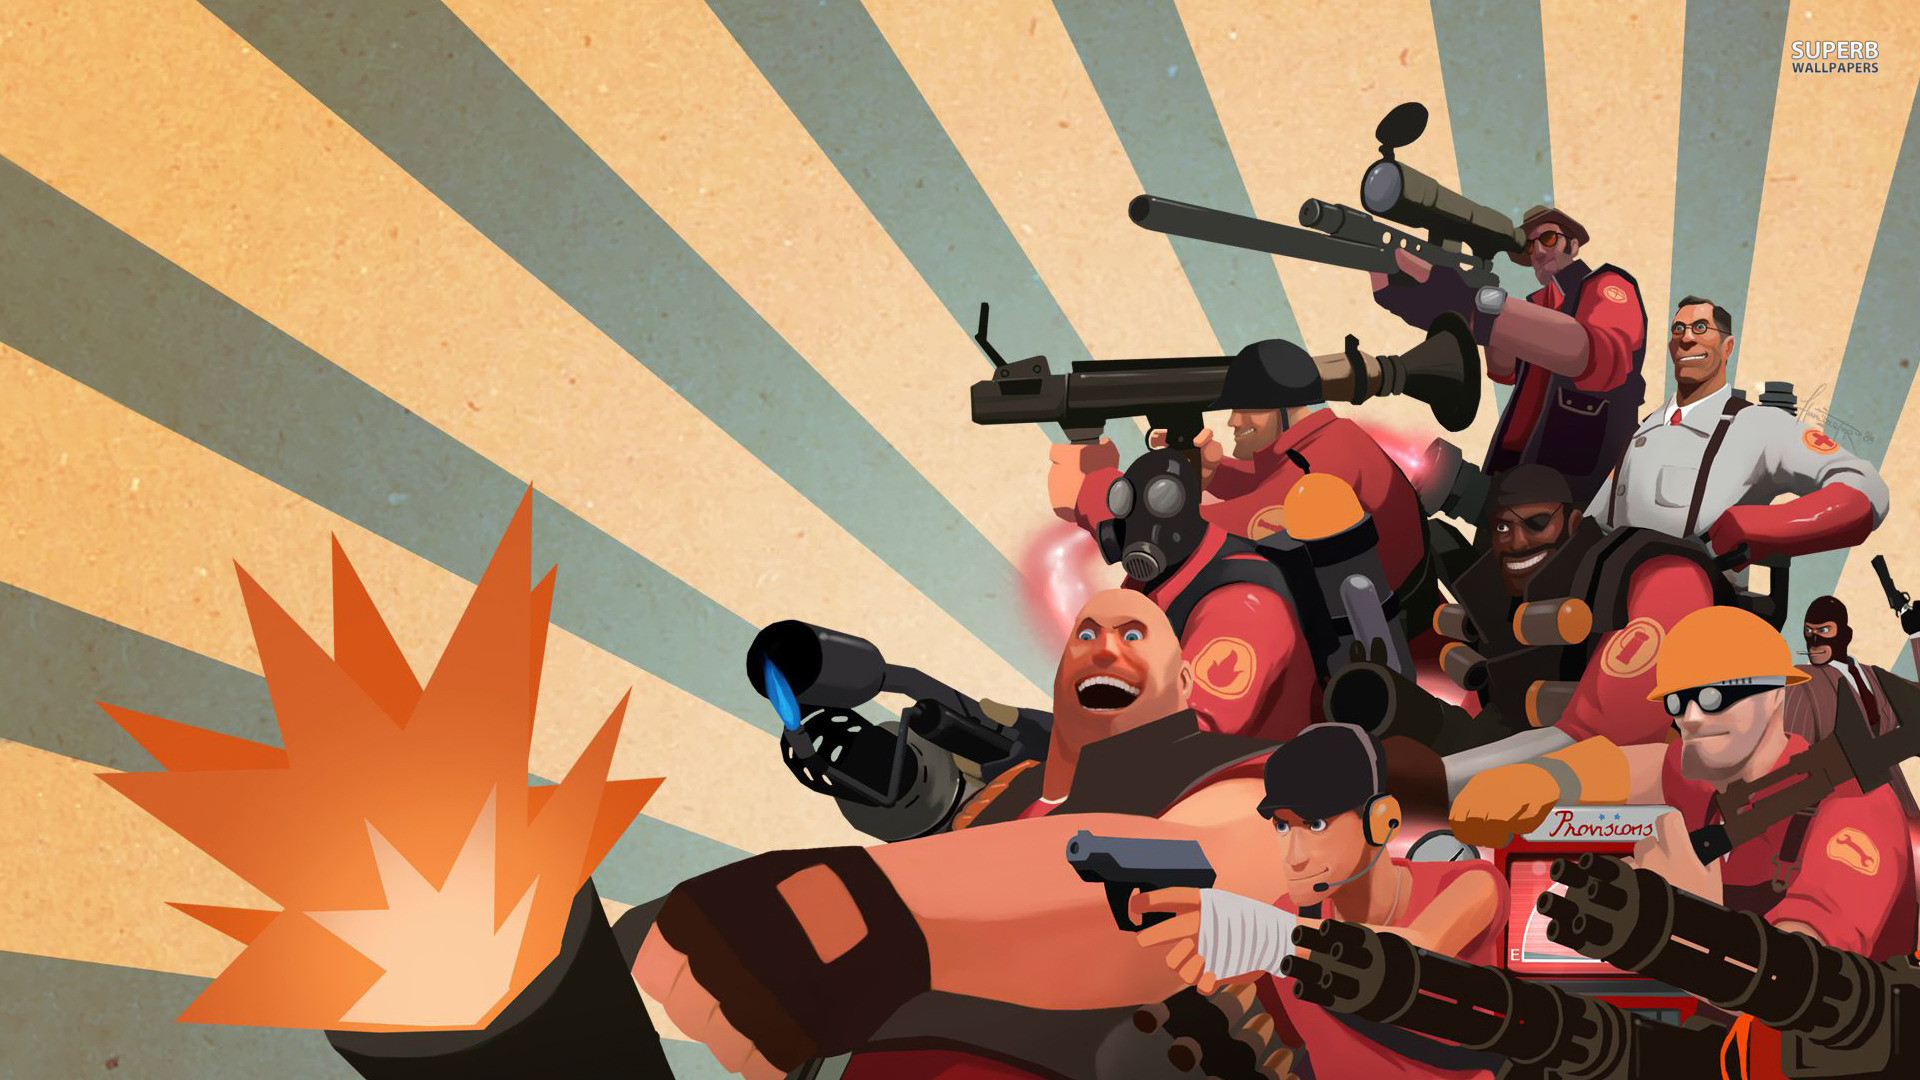 1920x1080 Team Fortress 2 wallpapers (17 Wallpapers)